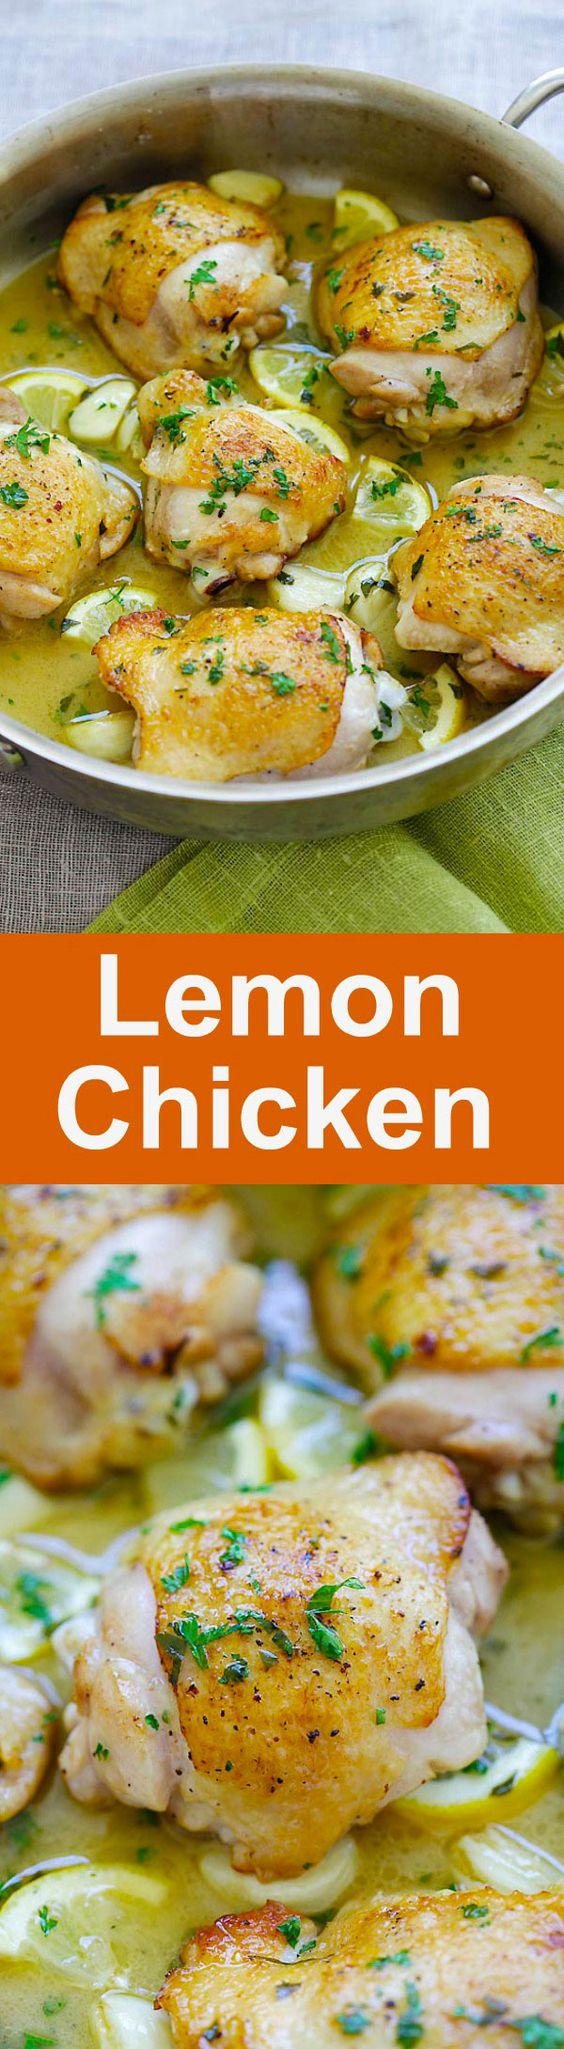 Lemon Chicken - one pan chicken pan-fried to golden perfection in buttery lemon sauce. Easy lemon chicken recipe that is perfect for dinner   rasamalaysia.com